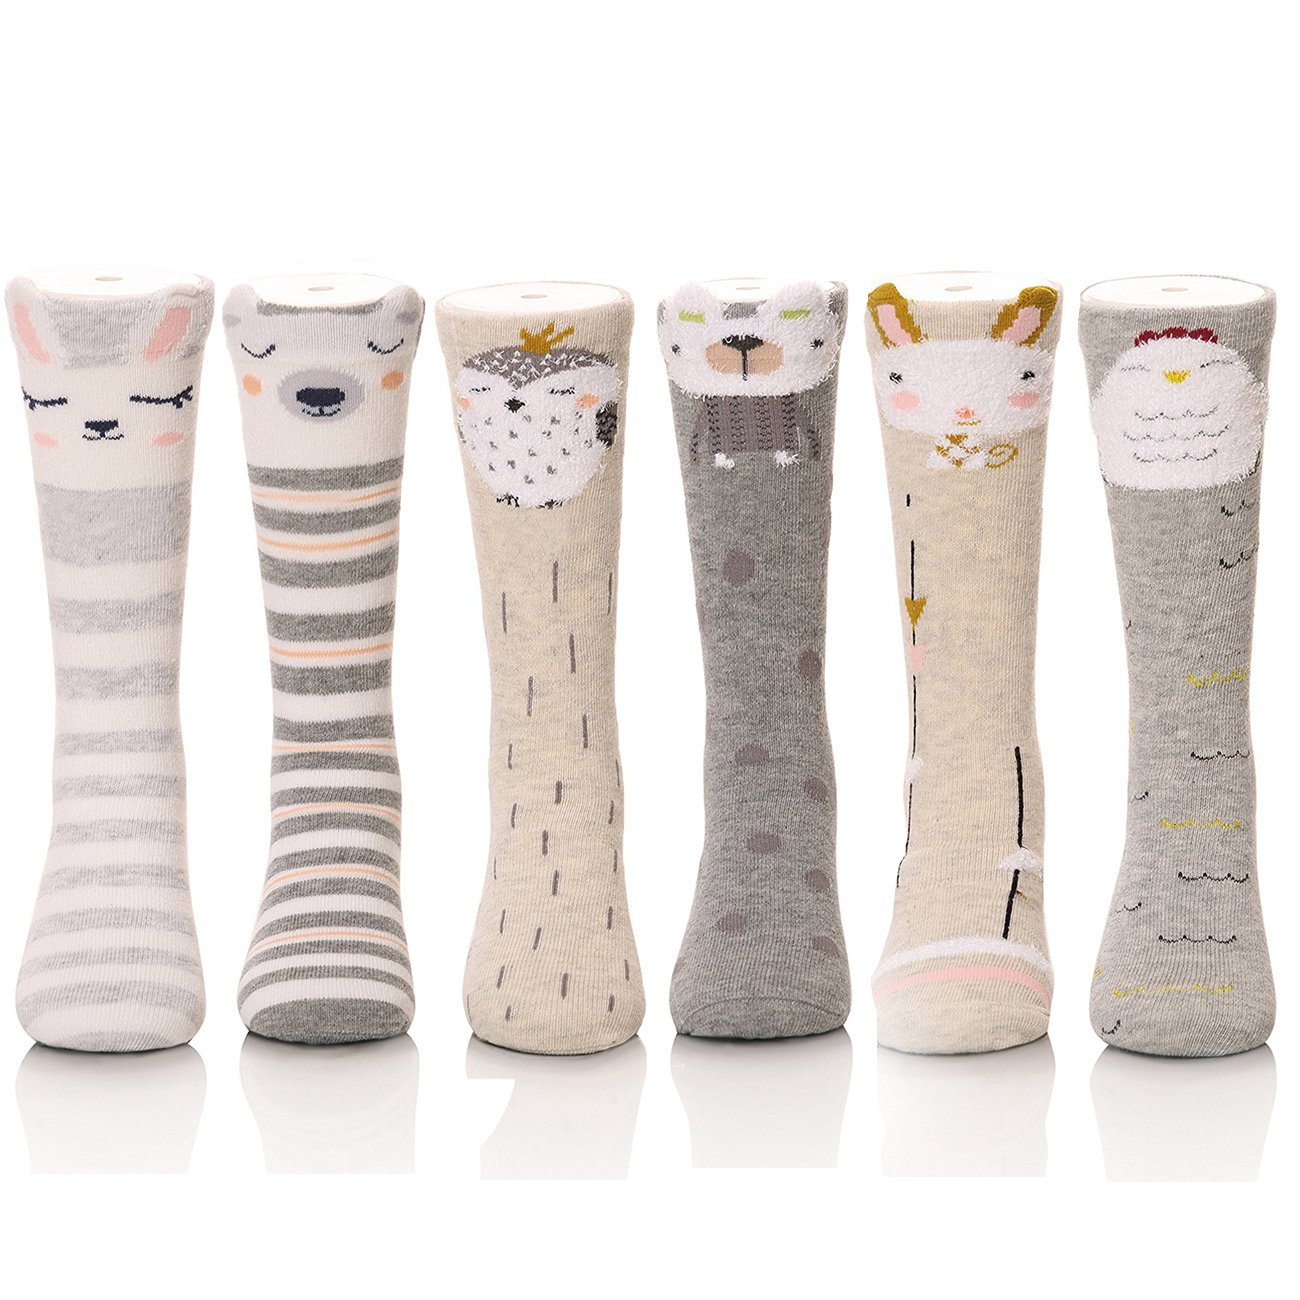 6Pack Girls Over Knee High Socks Cotton Tights Leg Warmer Stockings for 1-10Y cattam0102